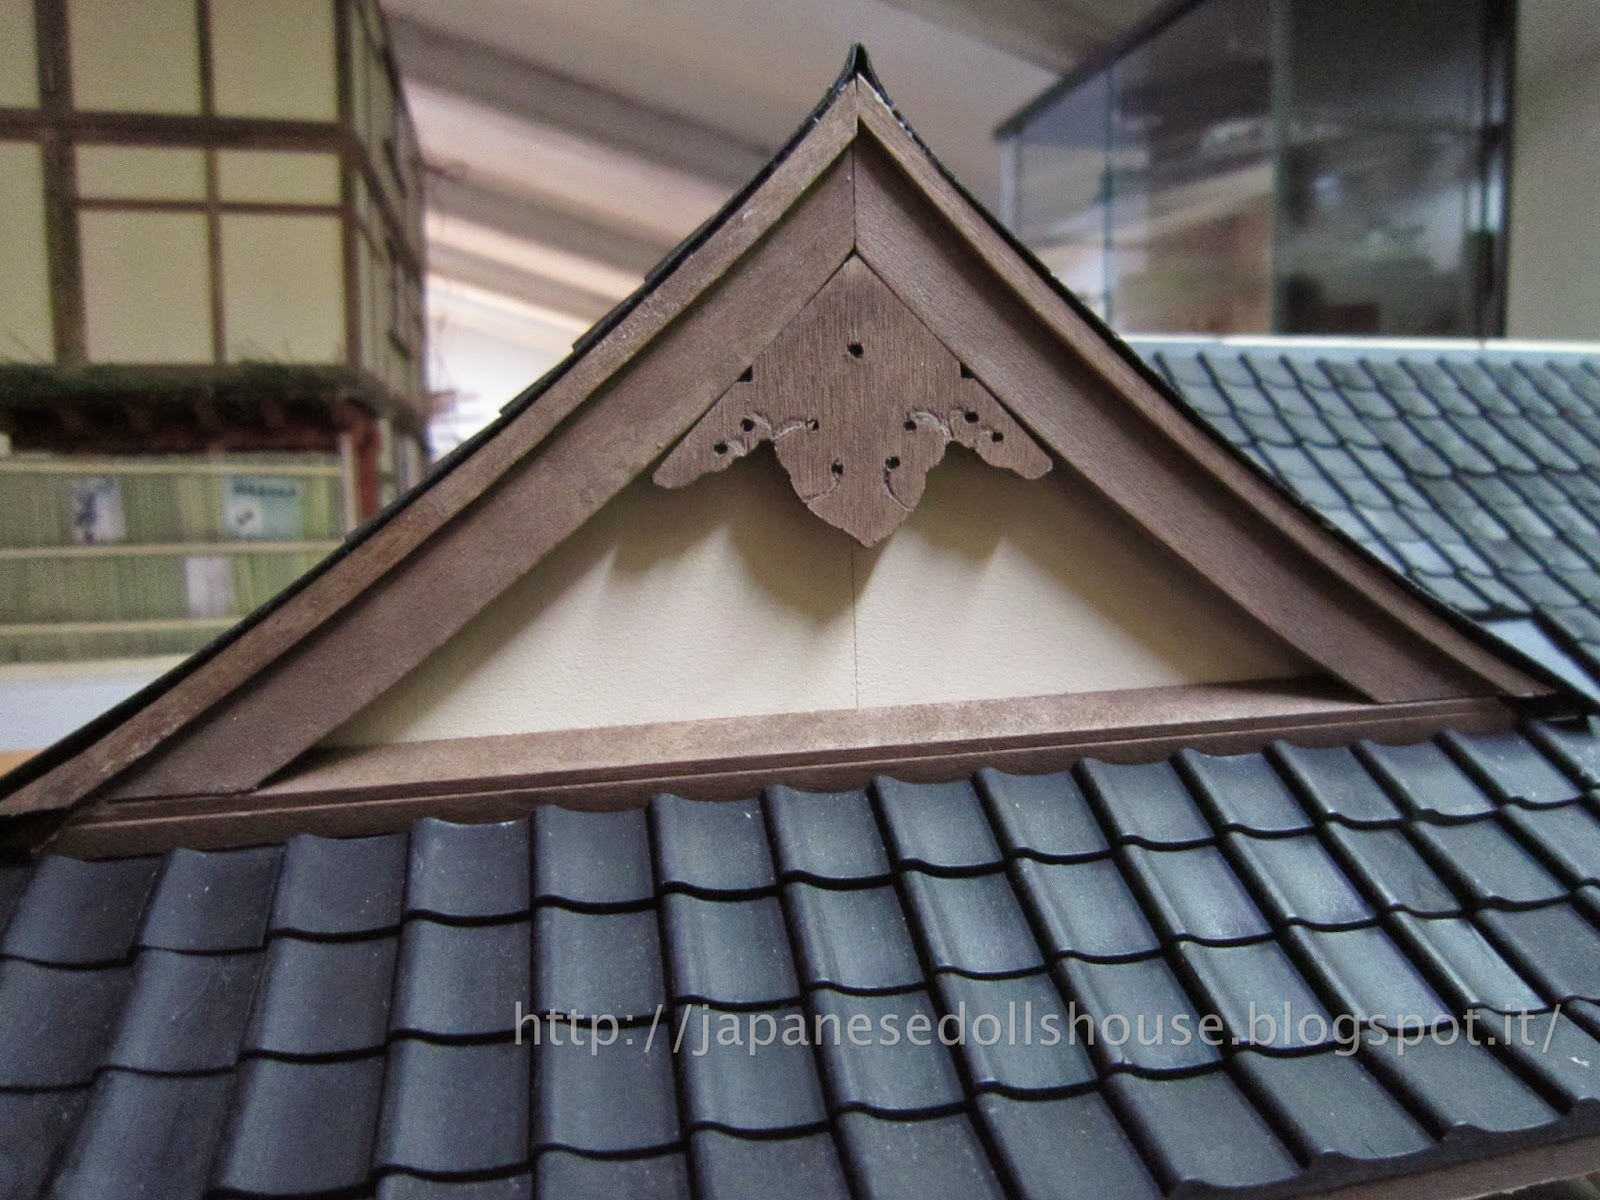 Japanese dolls 39 house ryokan in stile giapponese for Roof peak decorations